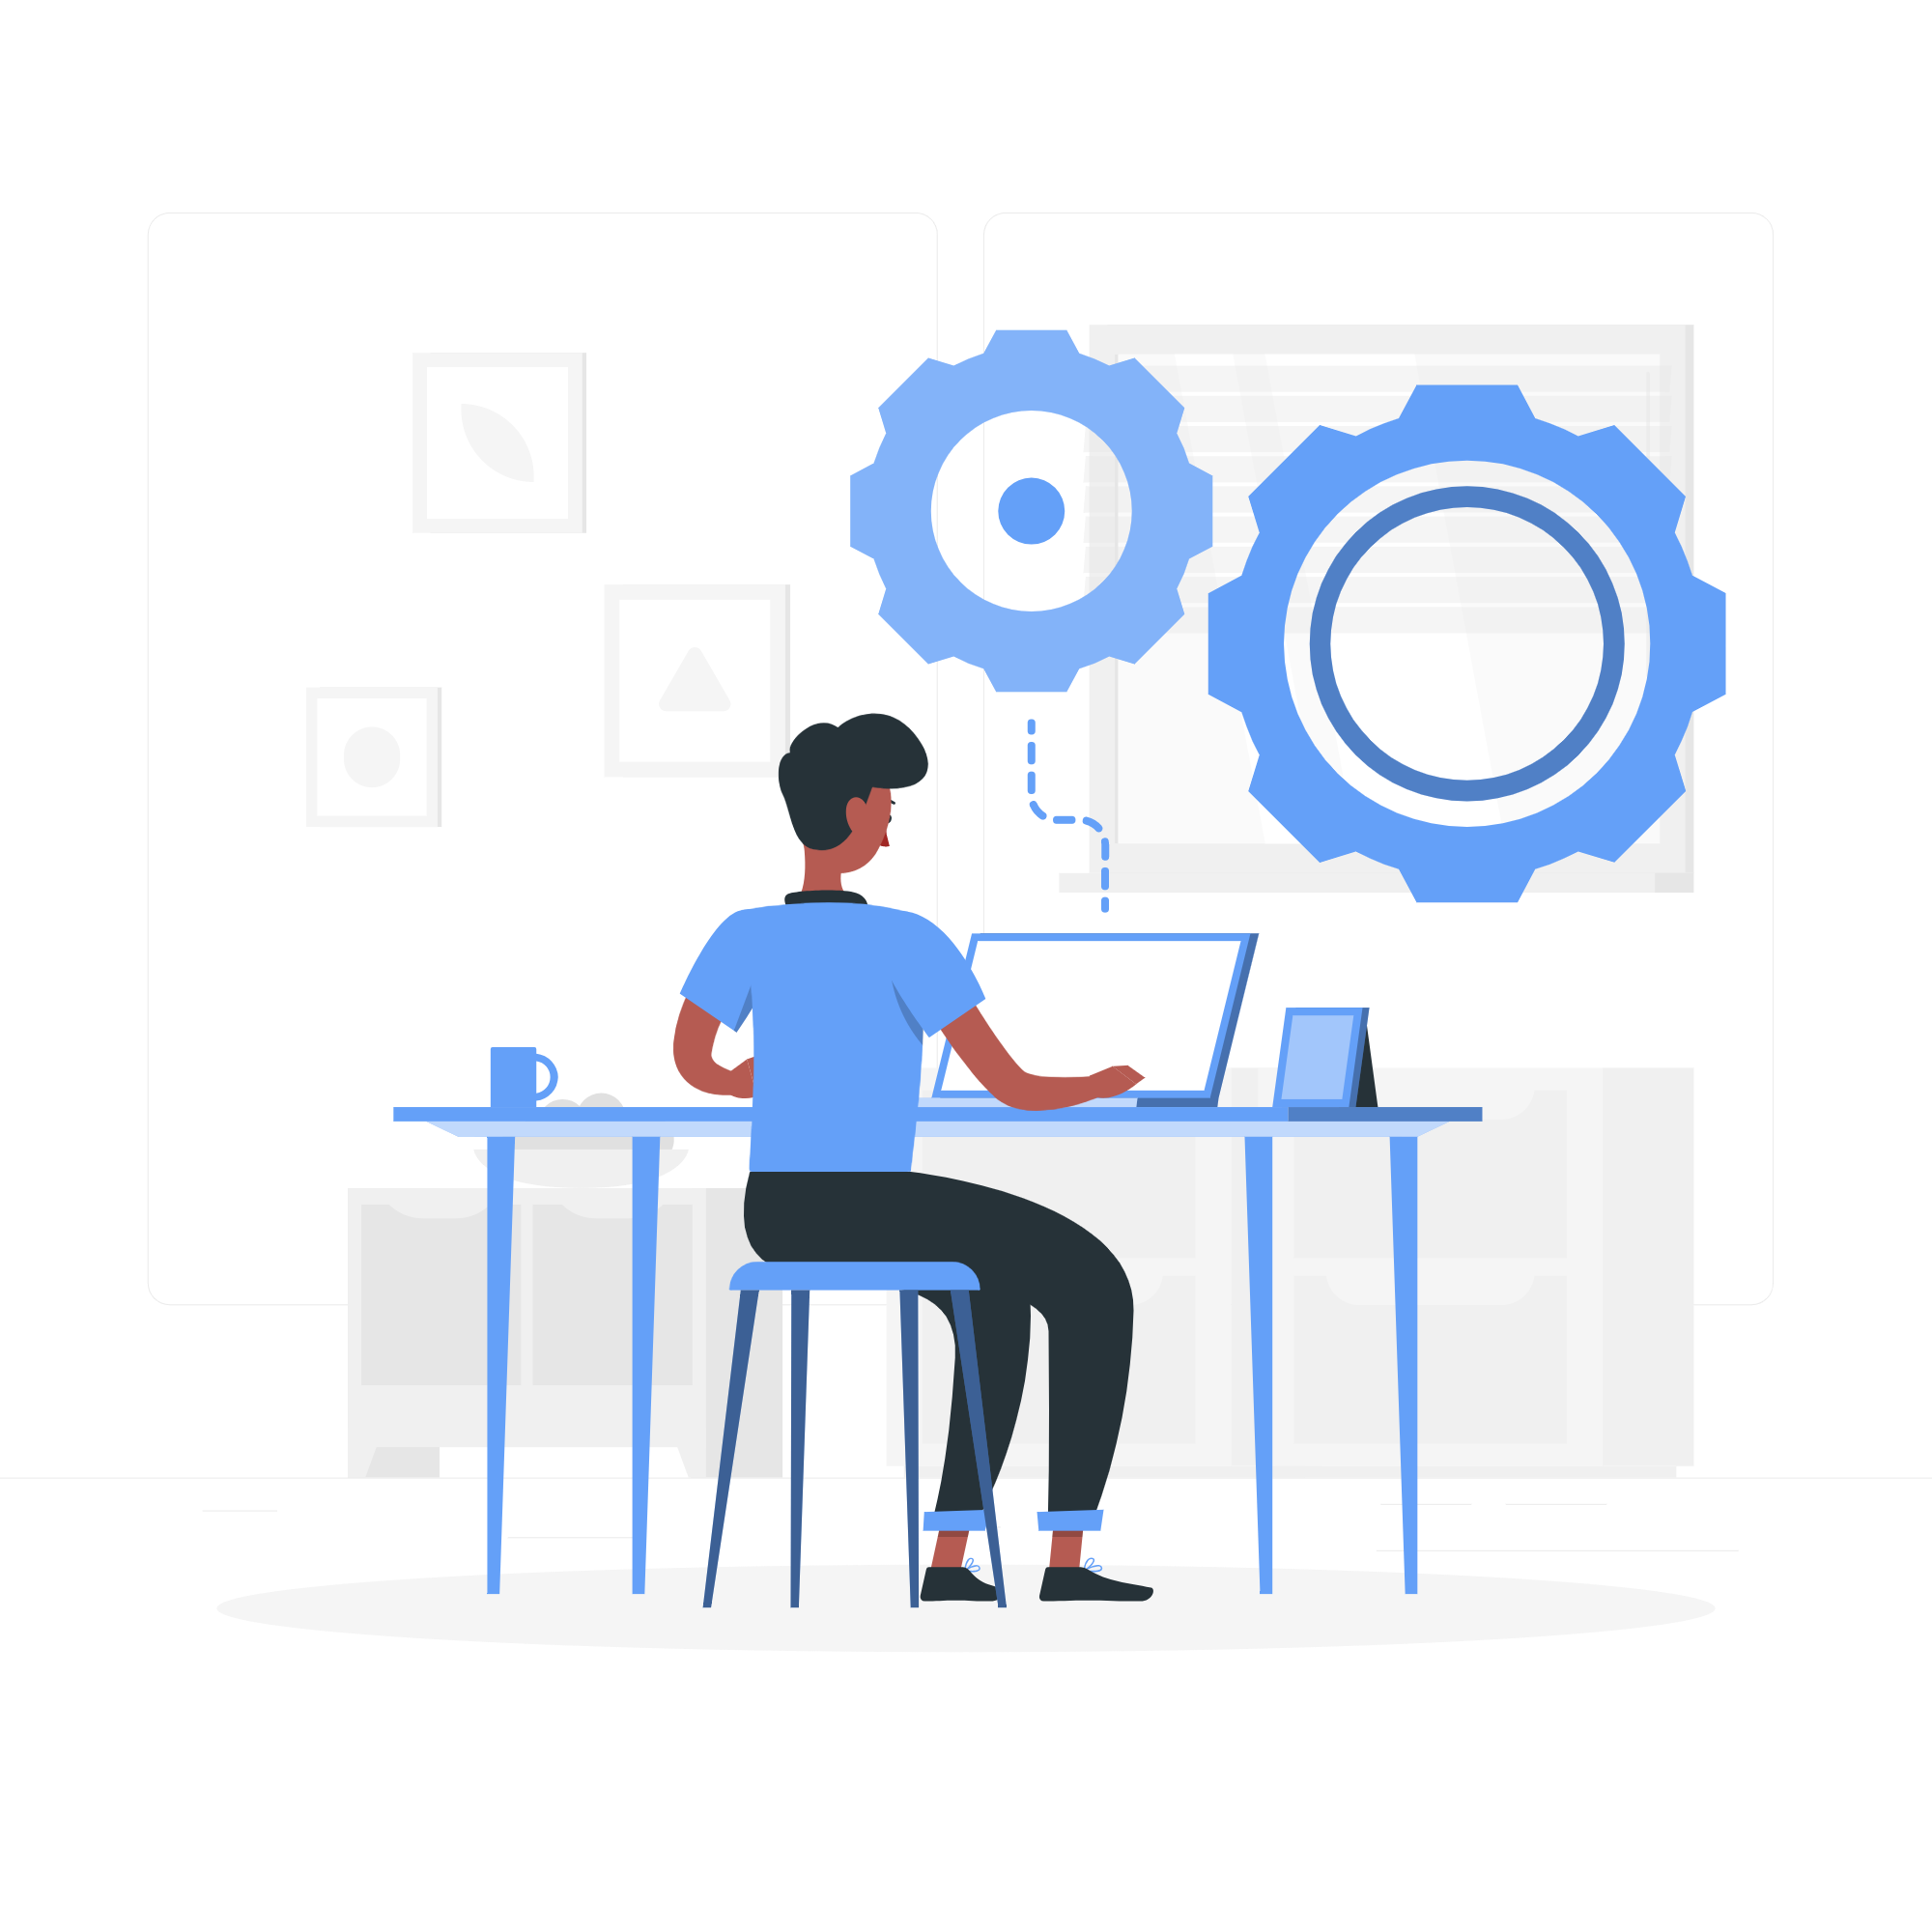 Create an automation workflow